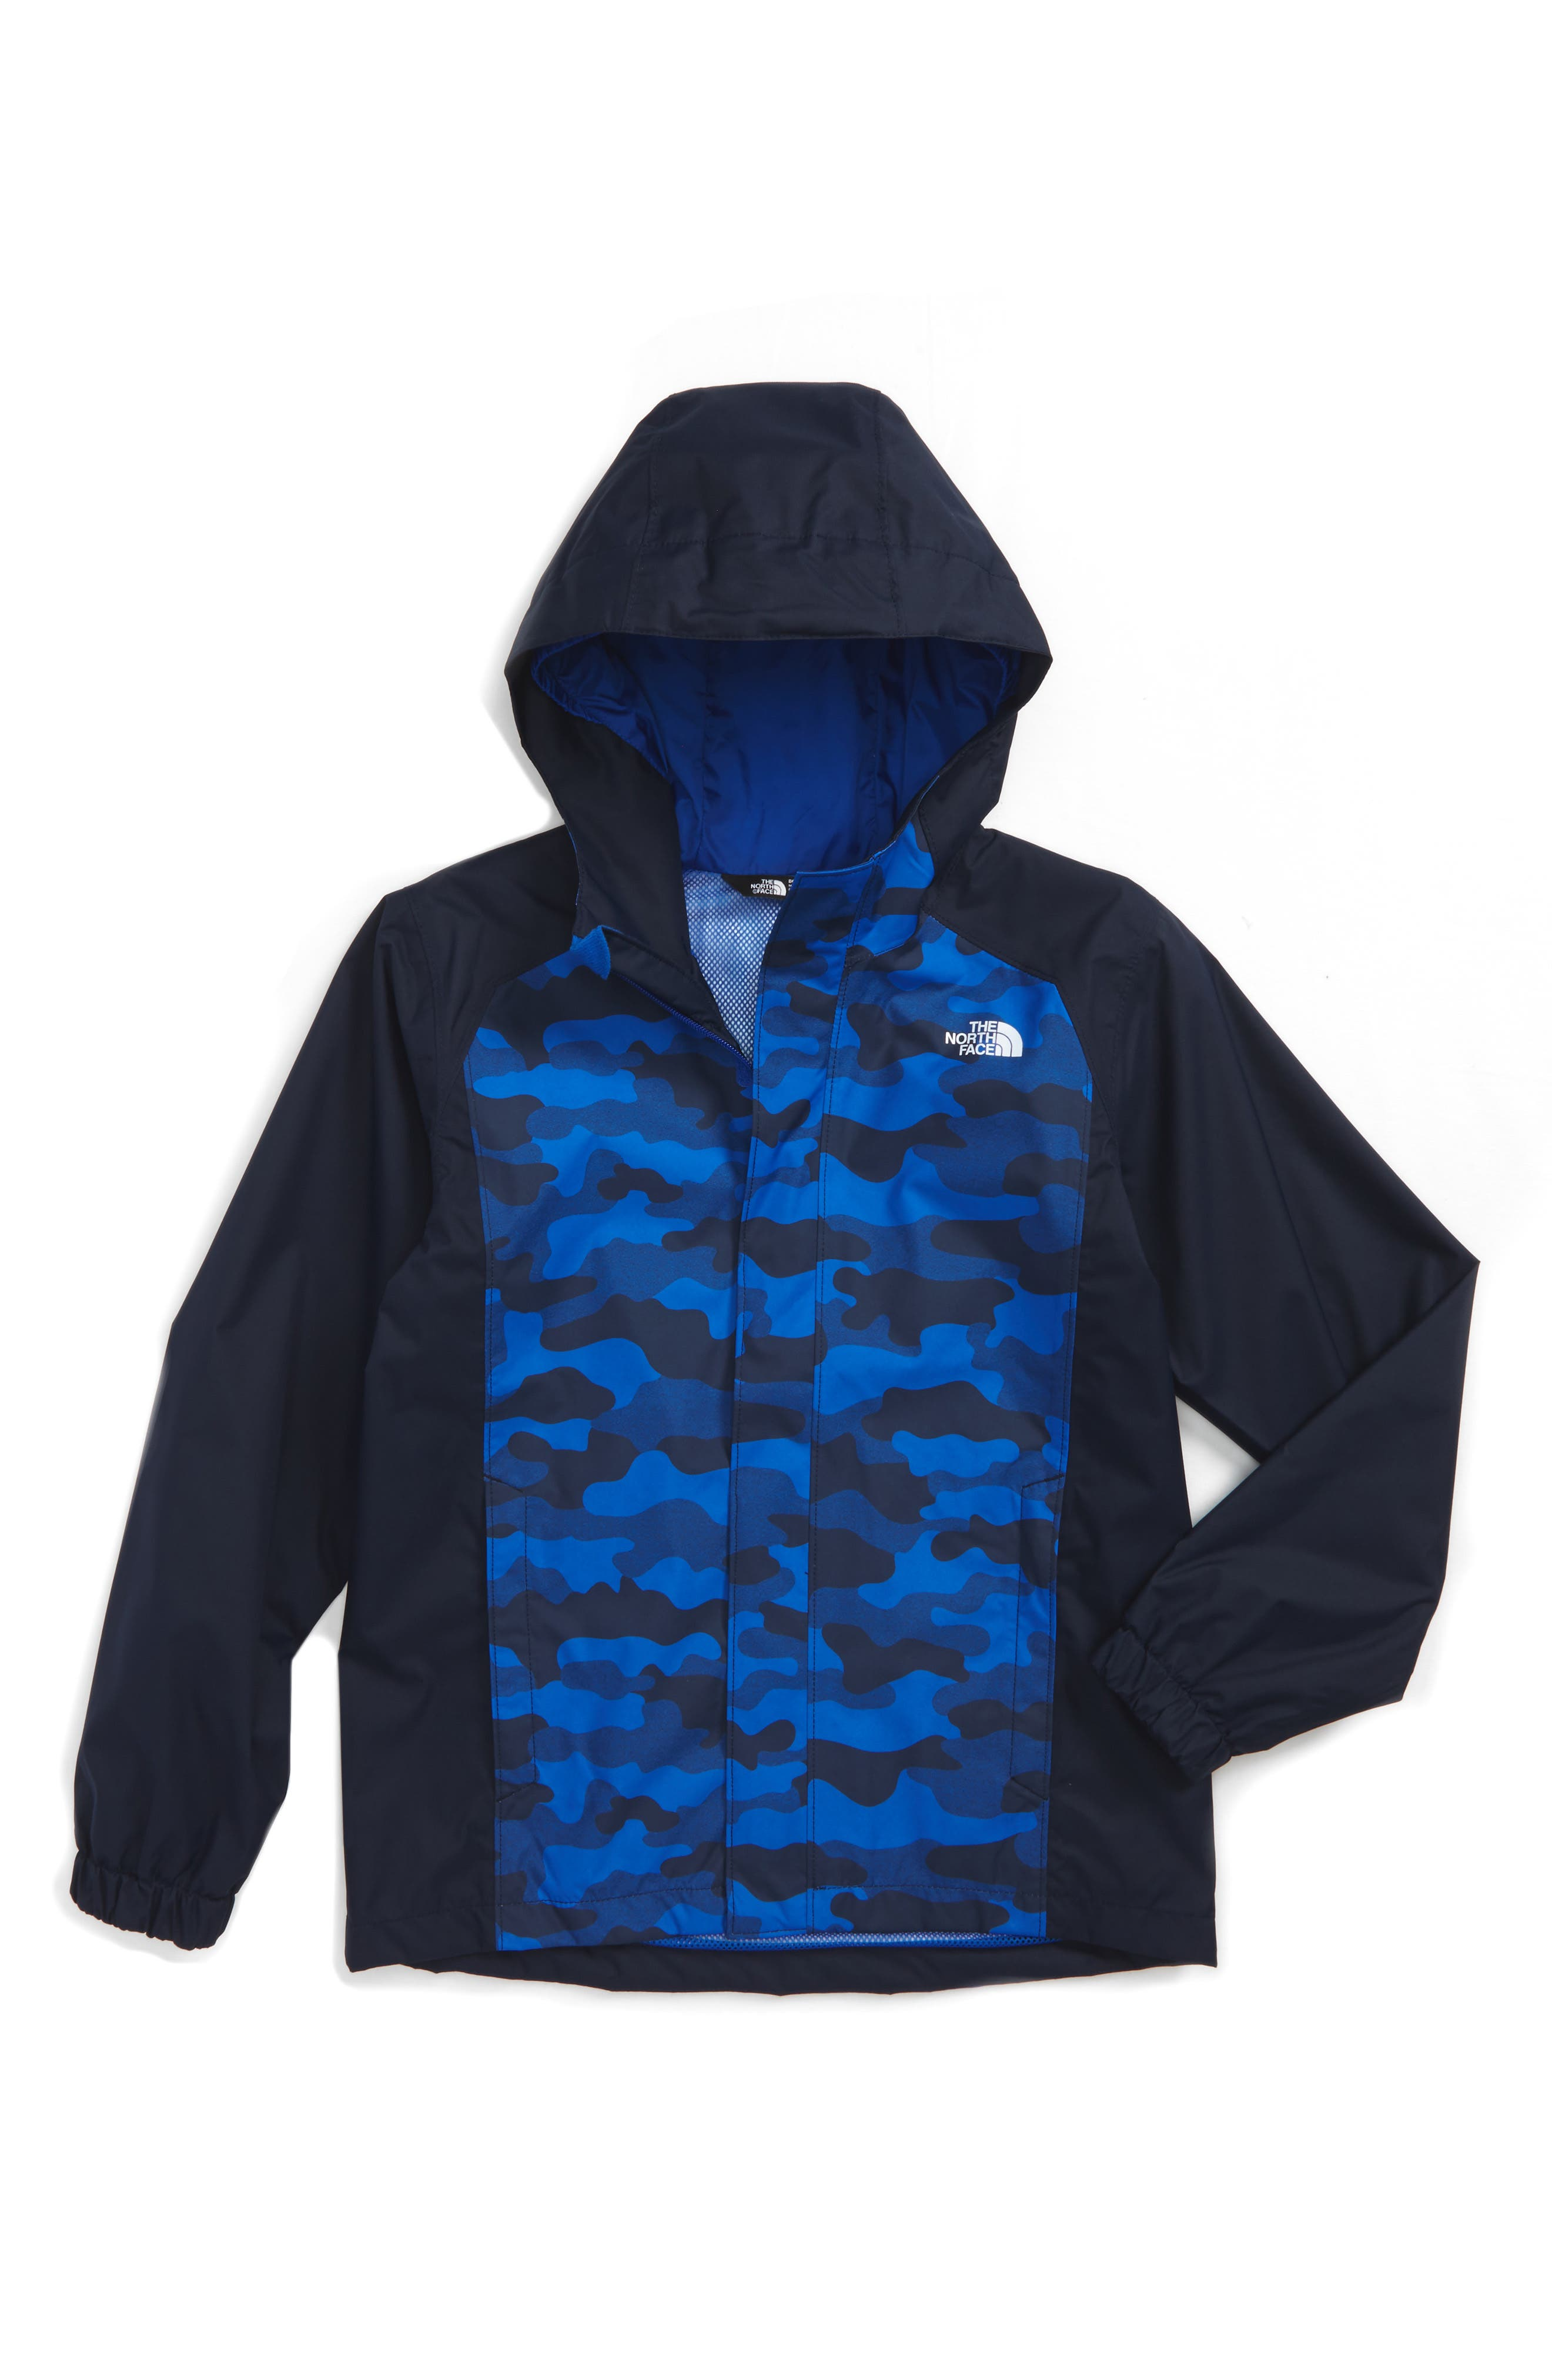 Main Image - The North Face 'Resolve' Waterproof Jacket (Little Boys & Big Boys)